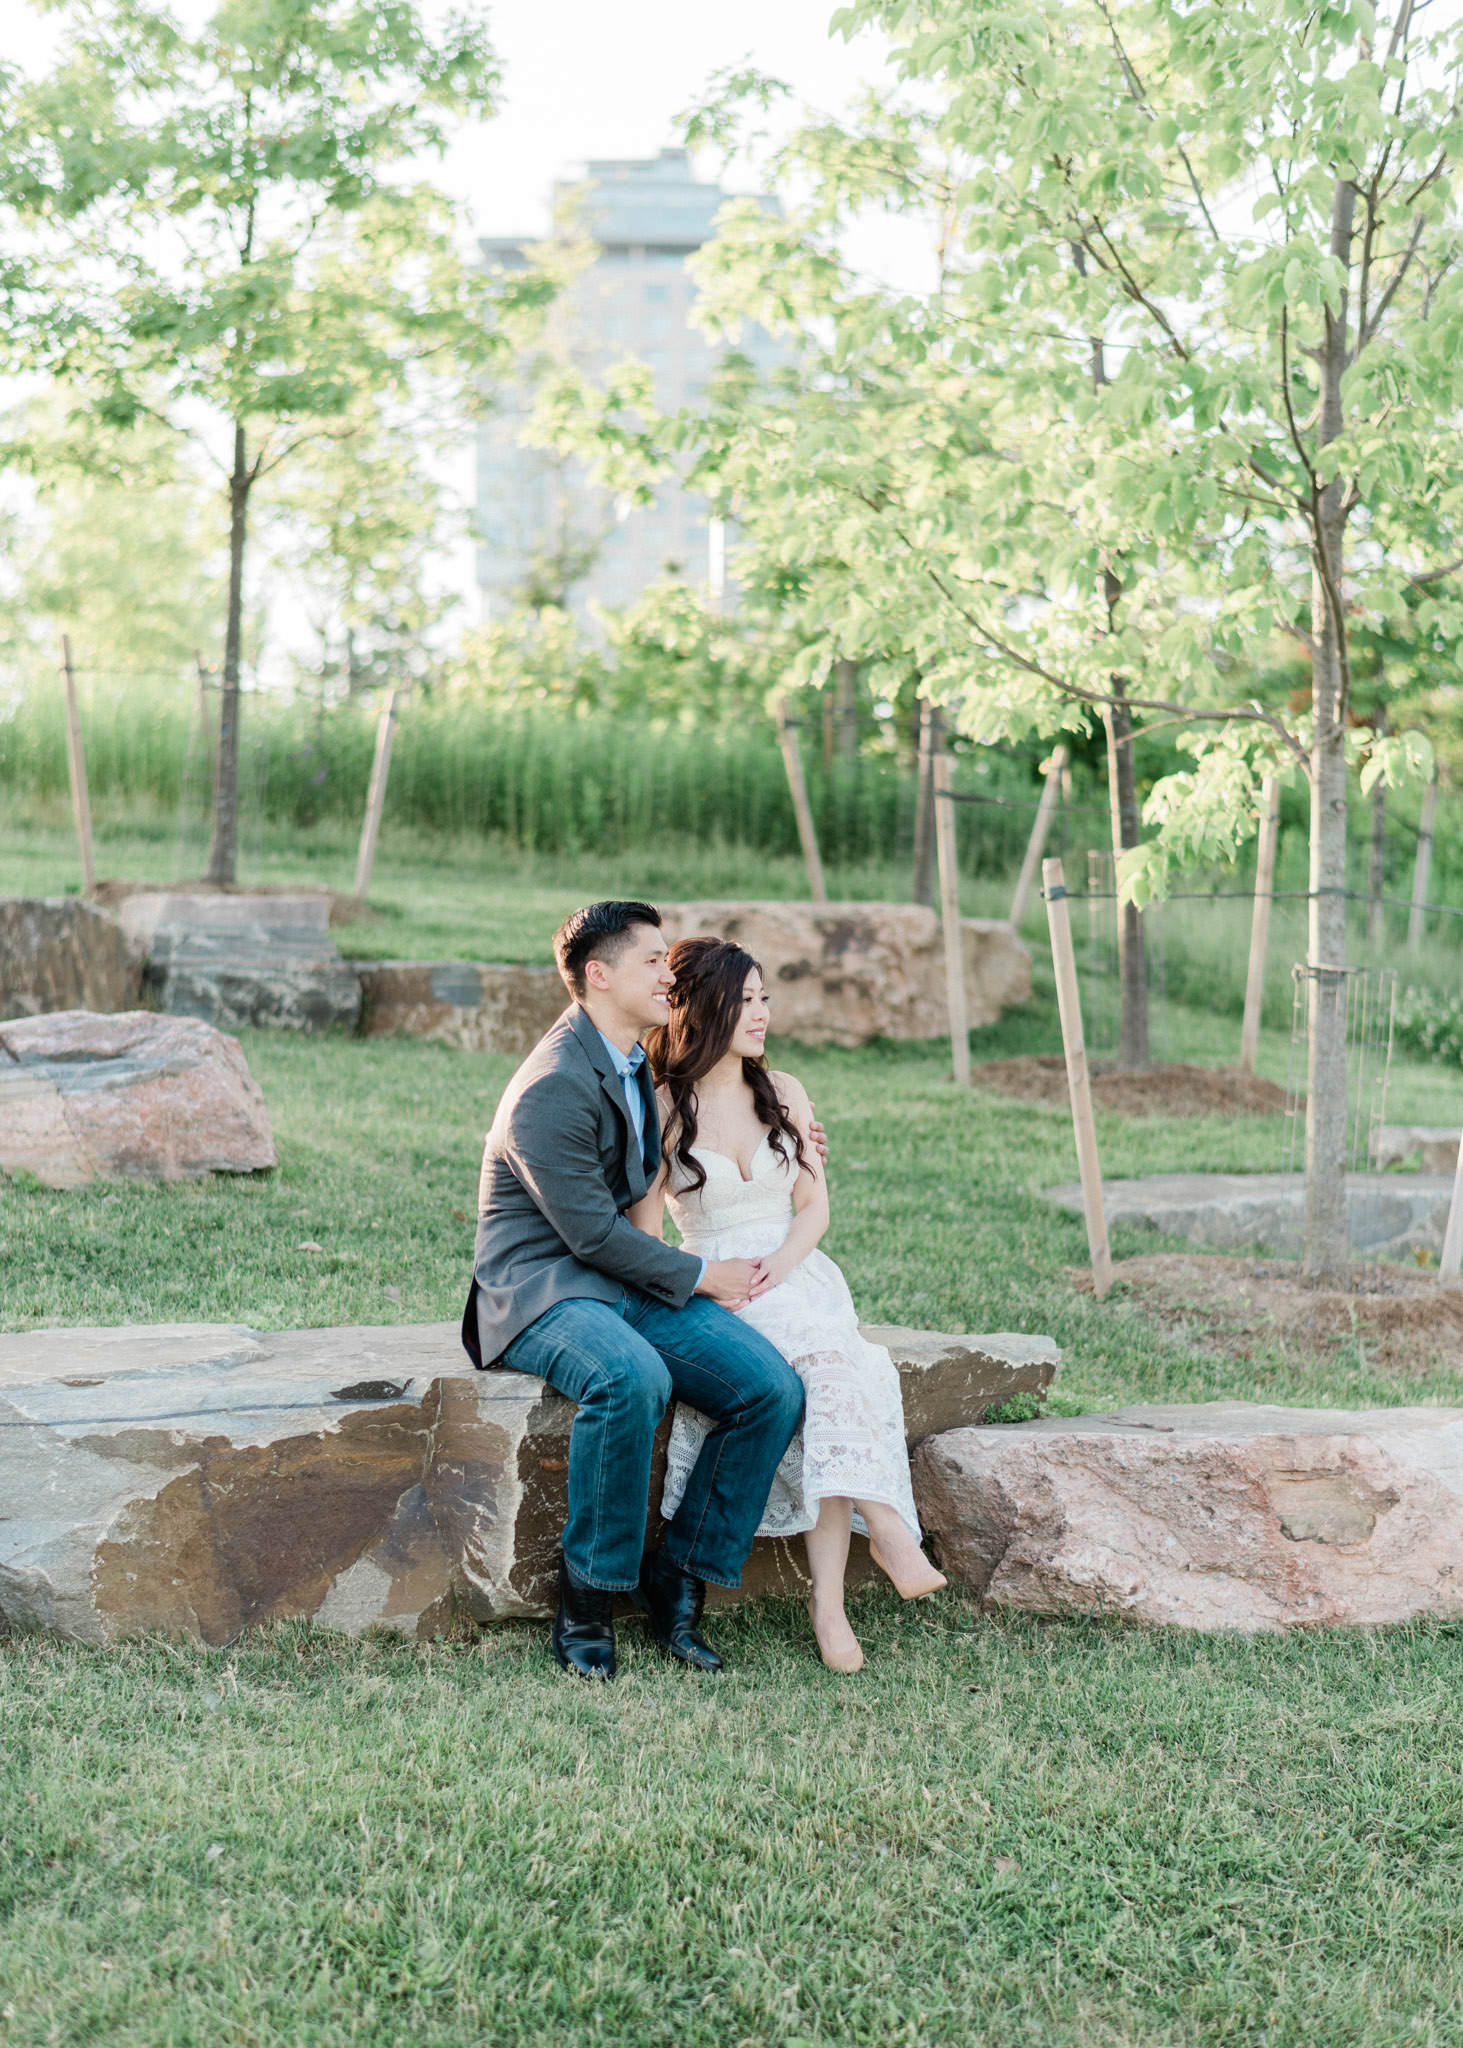 Engagement shoot at Trillium Park in Ontario Place